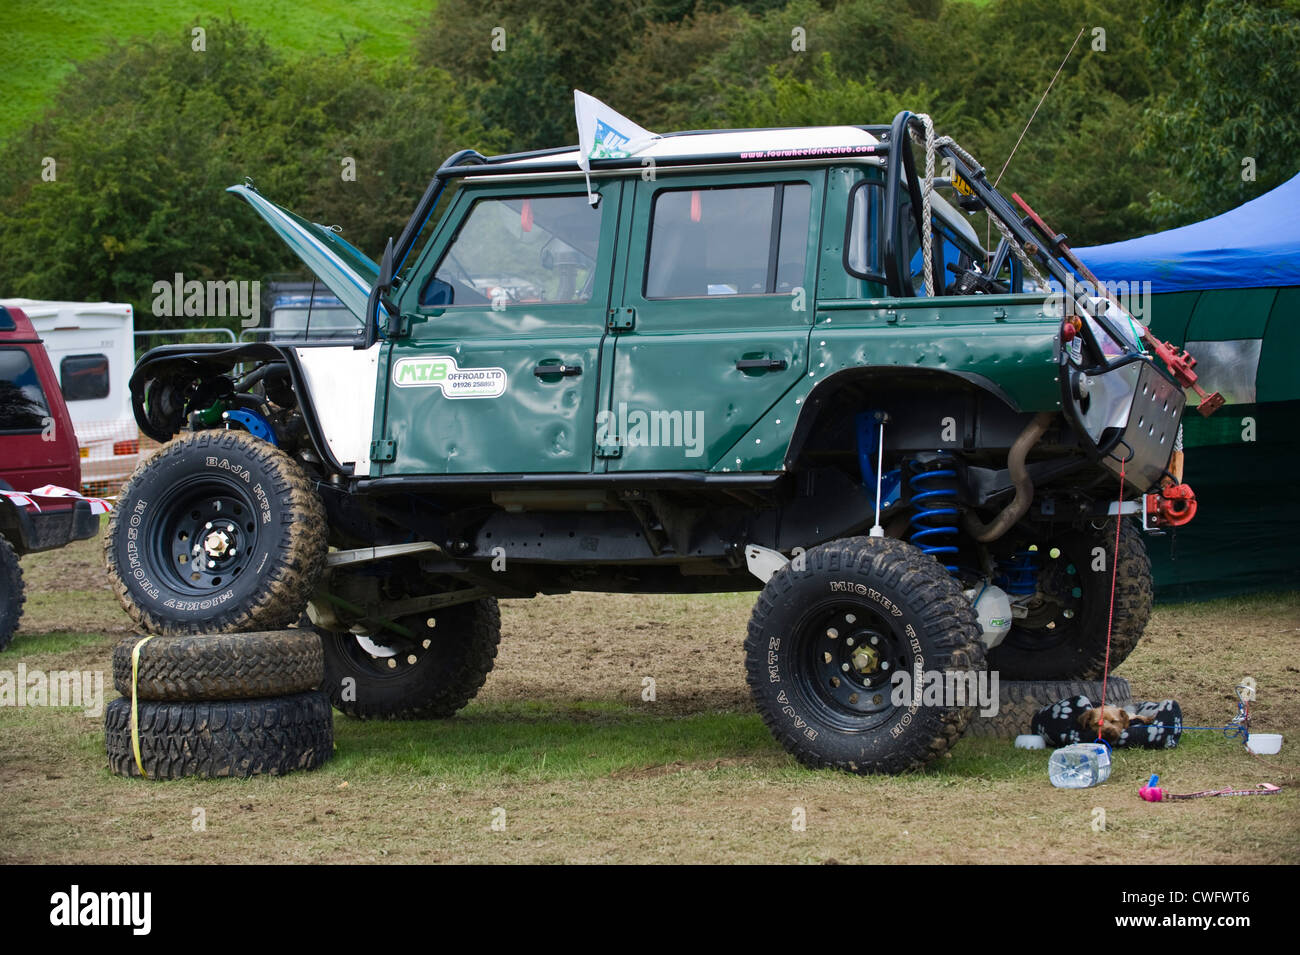 Highly Modified 4x4 Land Rover Defender 110 For Extreme